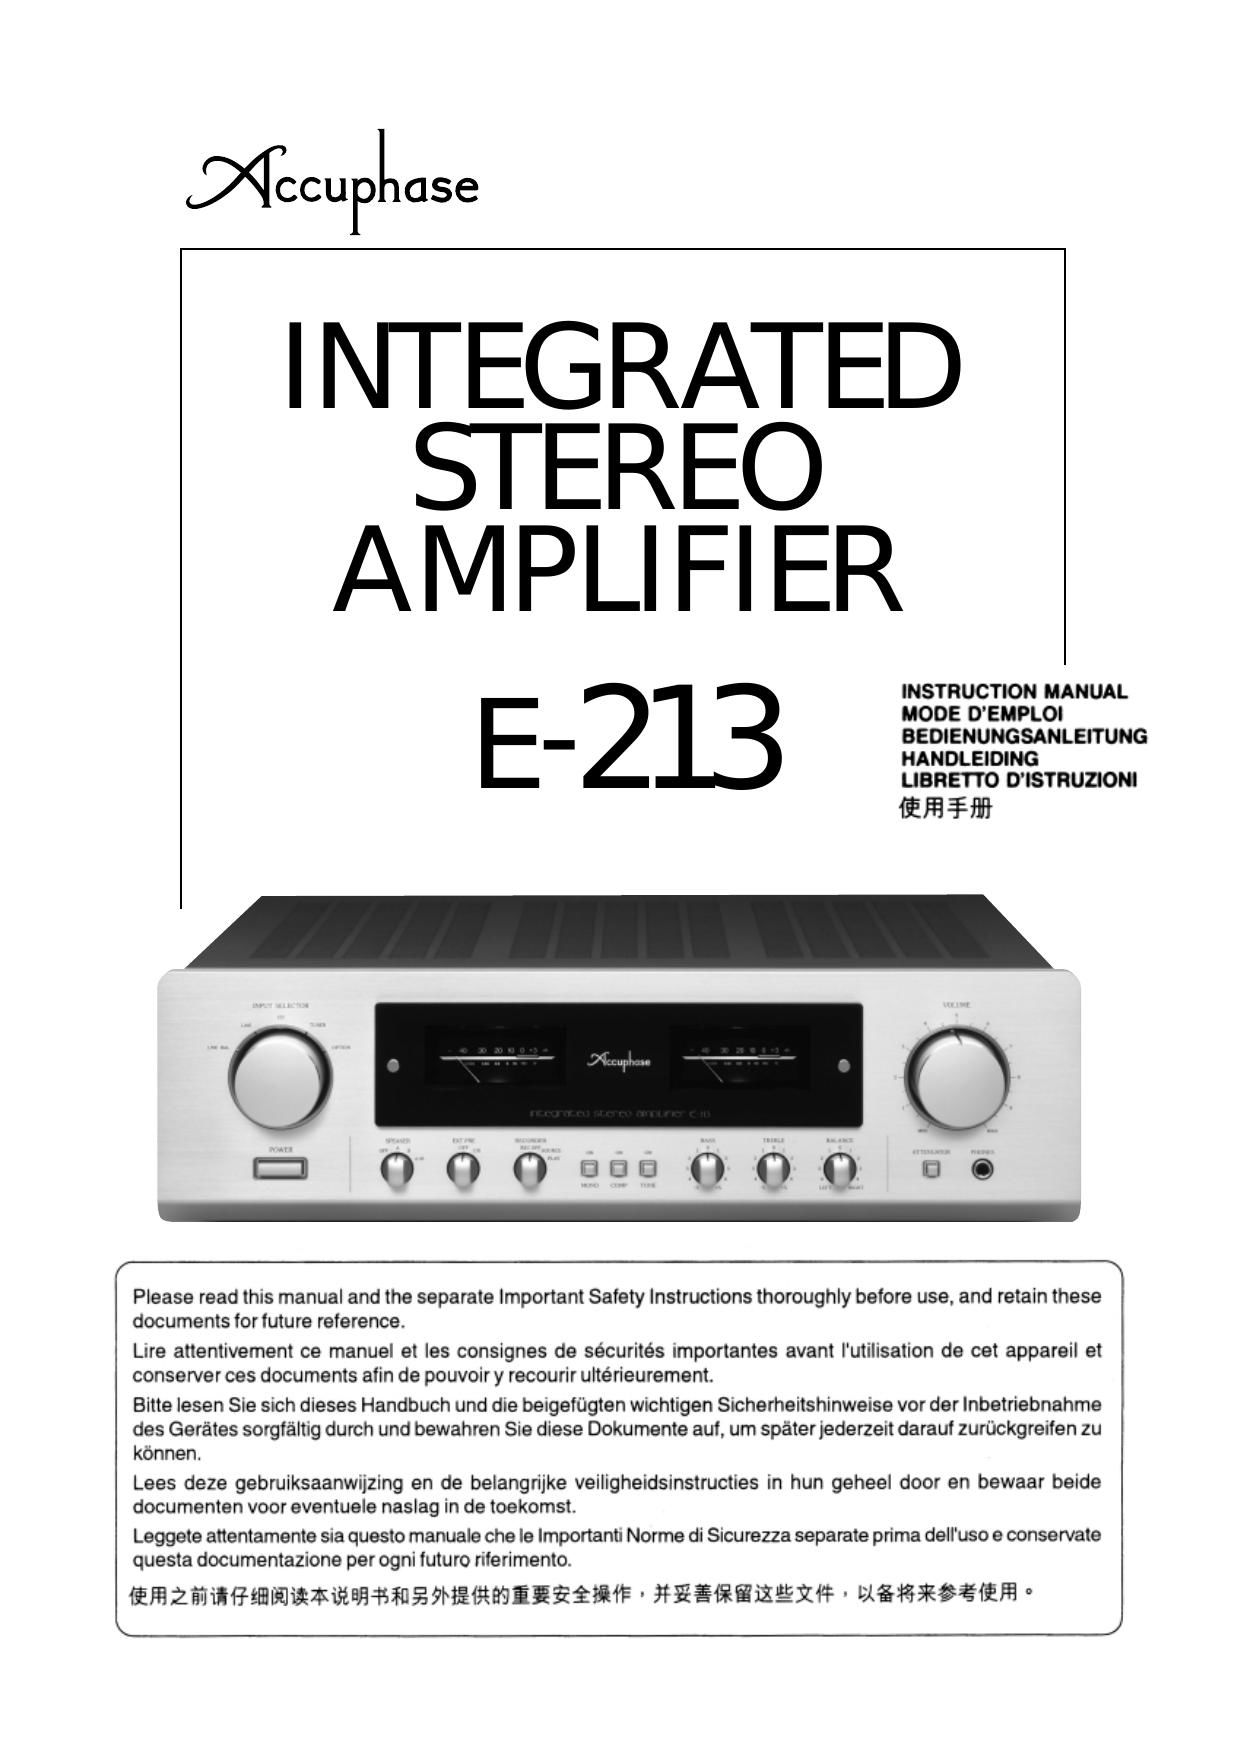 Accuphase E 213 Owners Manual